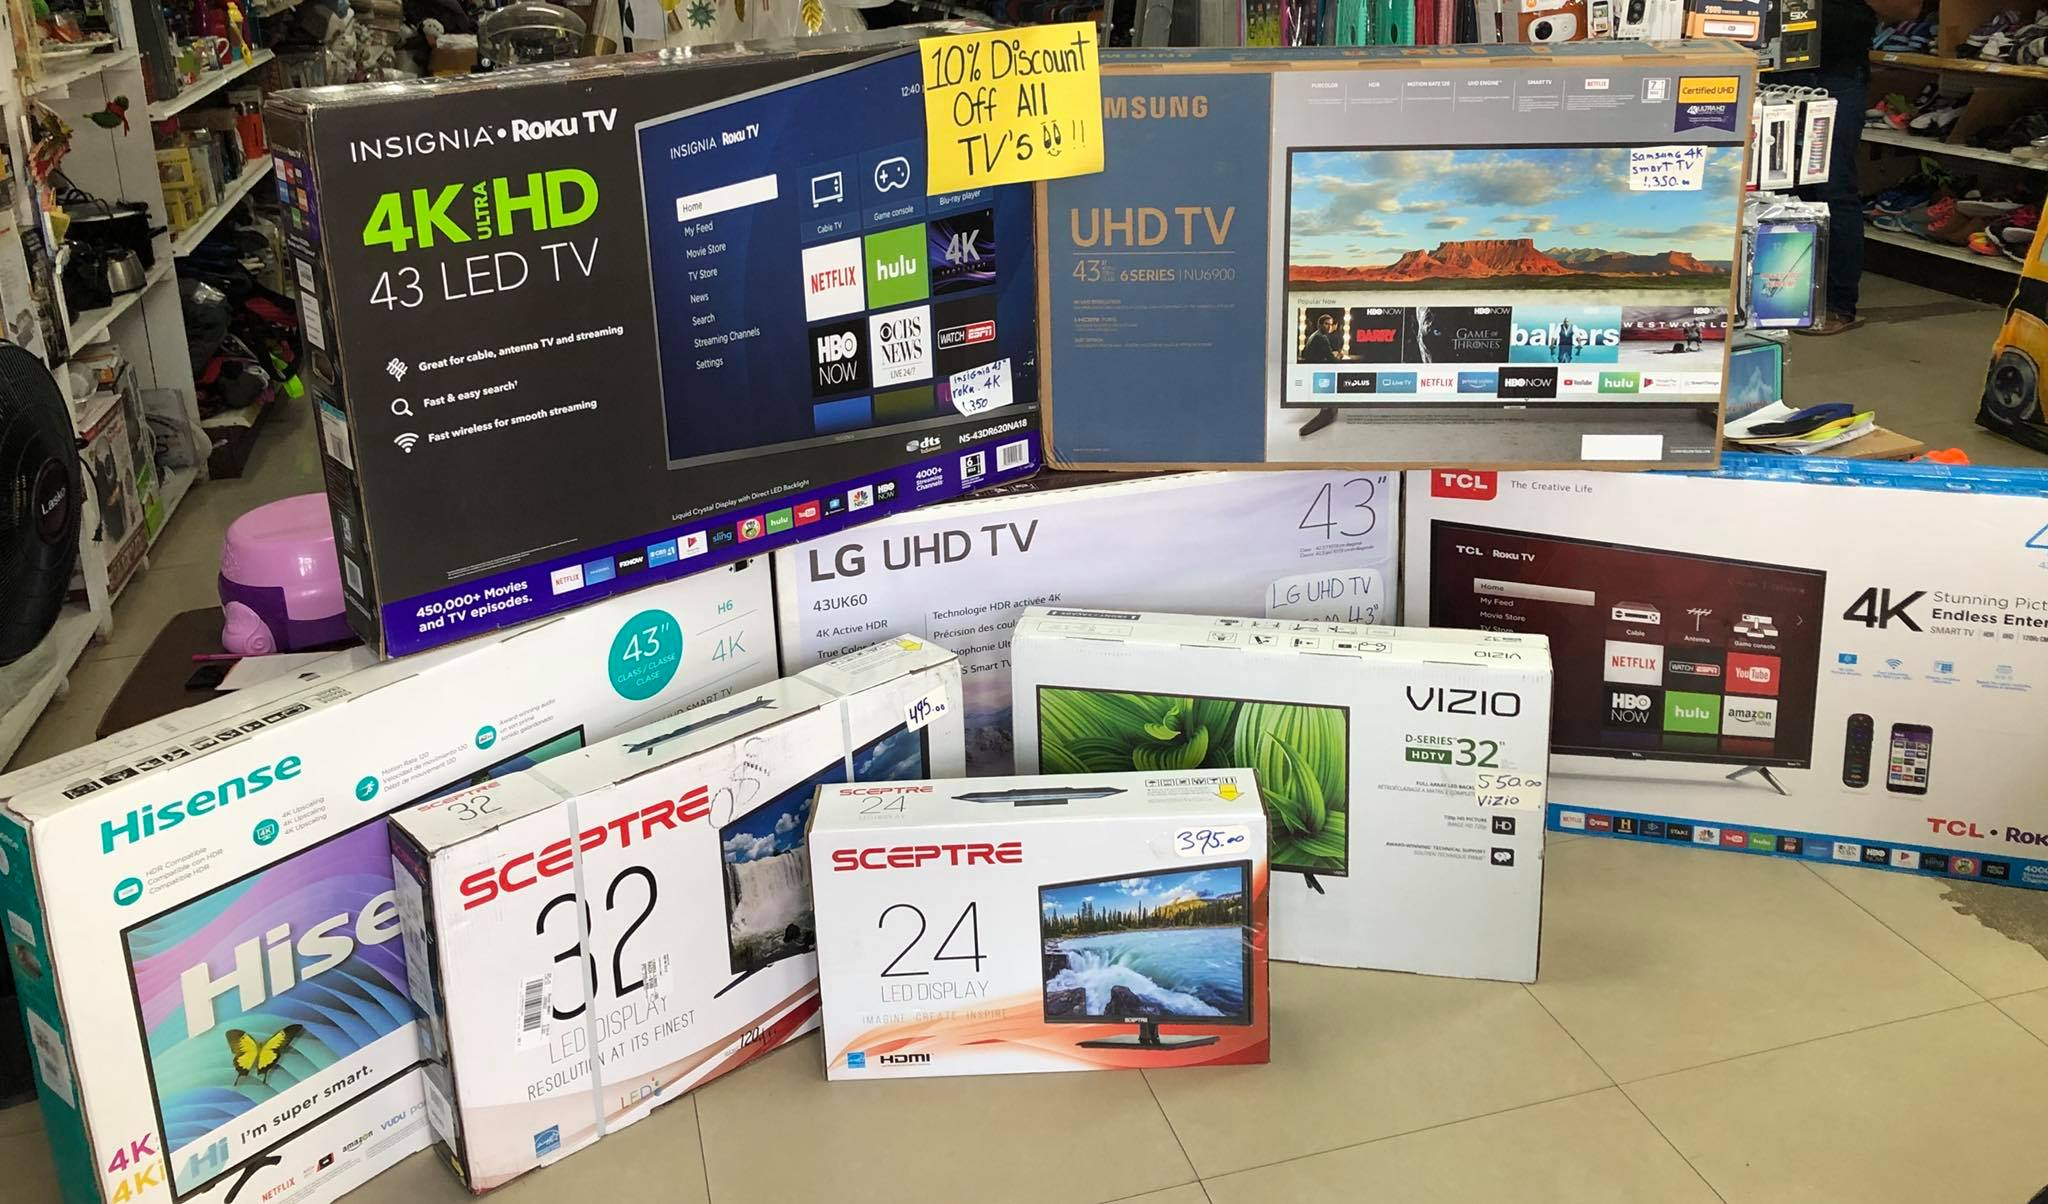 10% off on New TVs just arrived